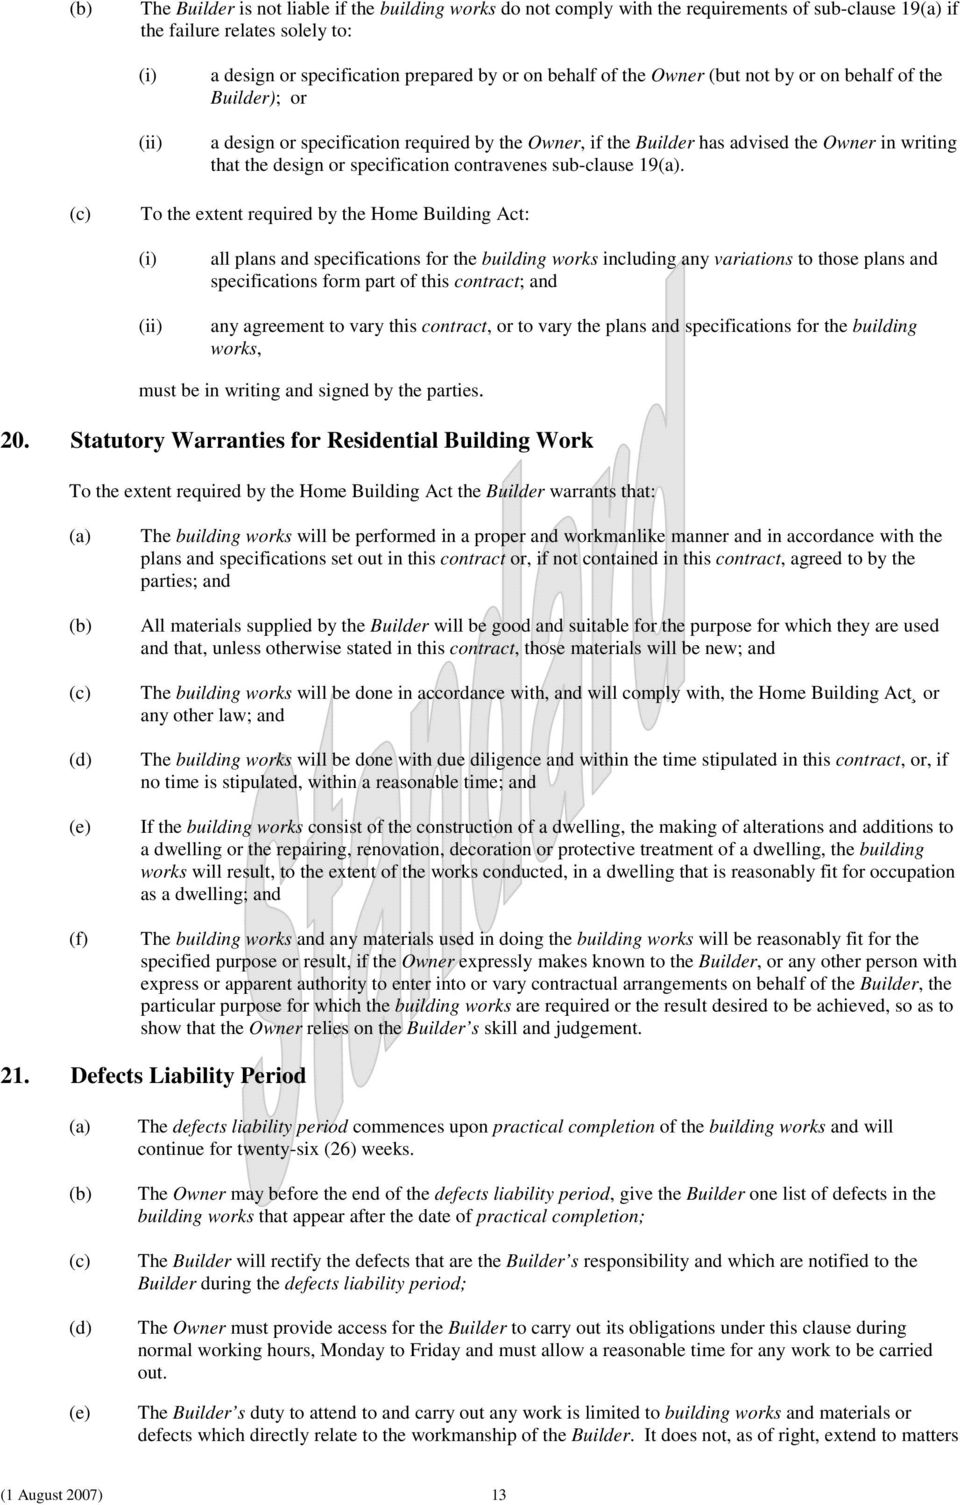 19. To the extent required by the Home Building Act: all plans and specifications for the building works including any variations to those plans and specifications form part of this contract; and any